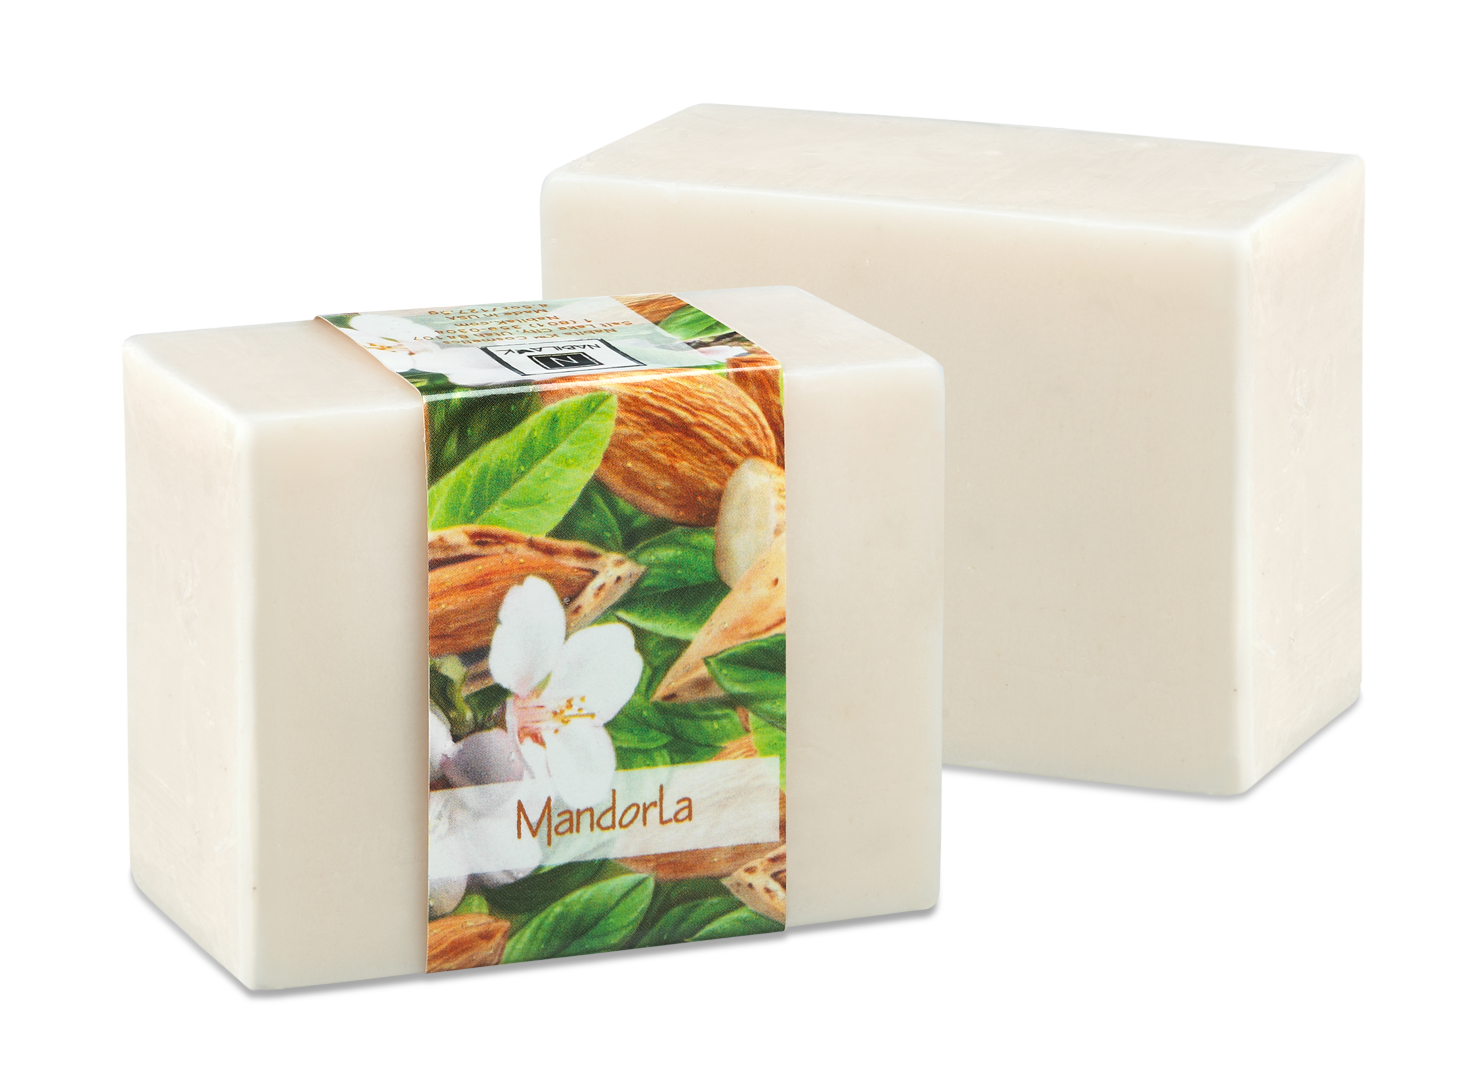 Mondorla is a soothing glycerine soap infused with almonds to help calm dry irritated skin.